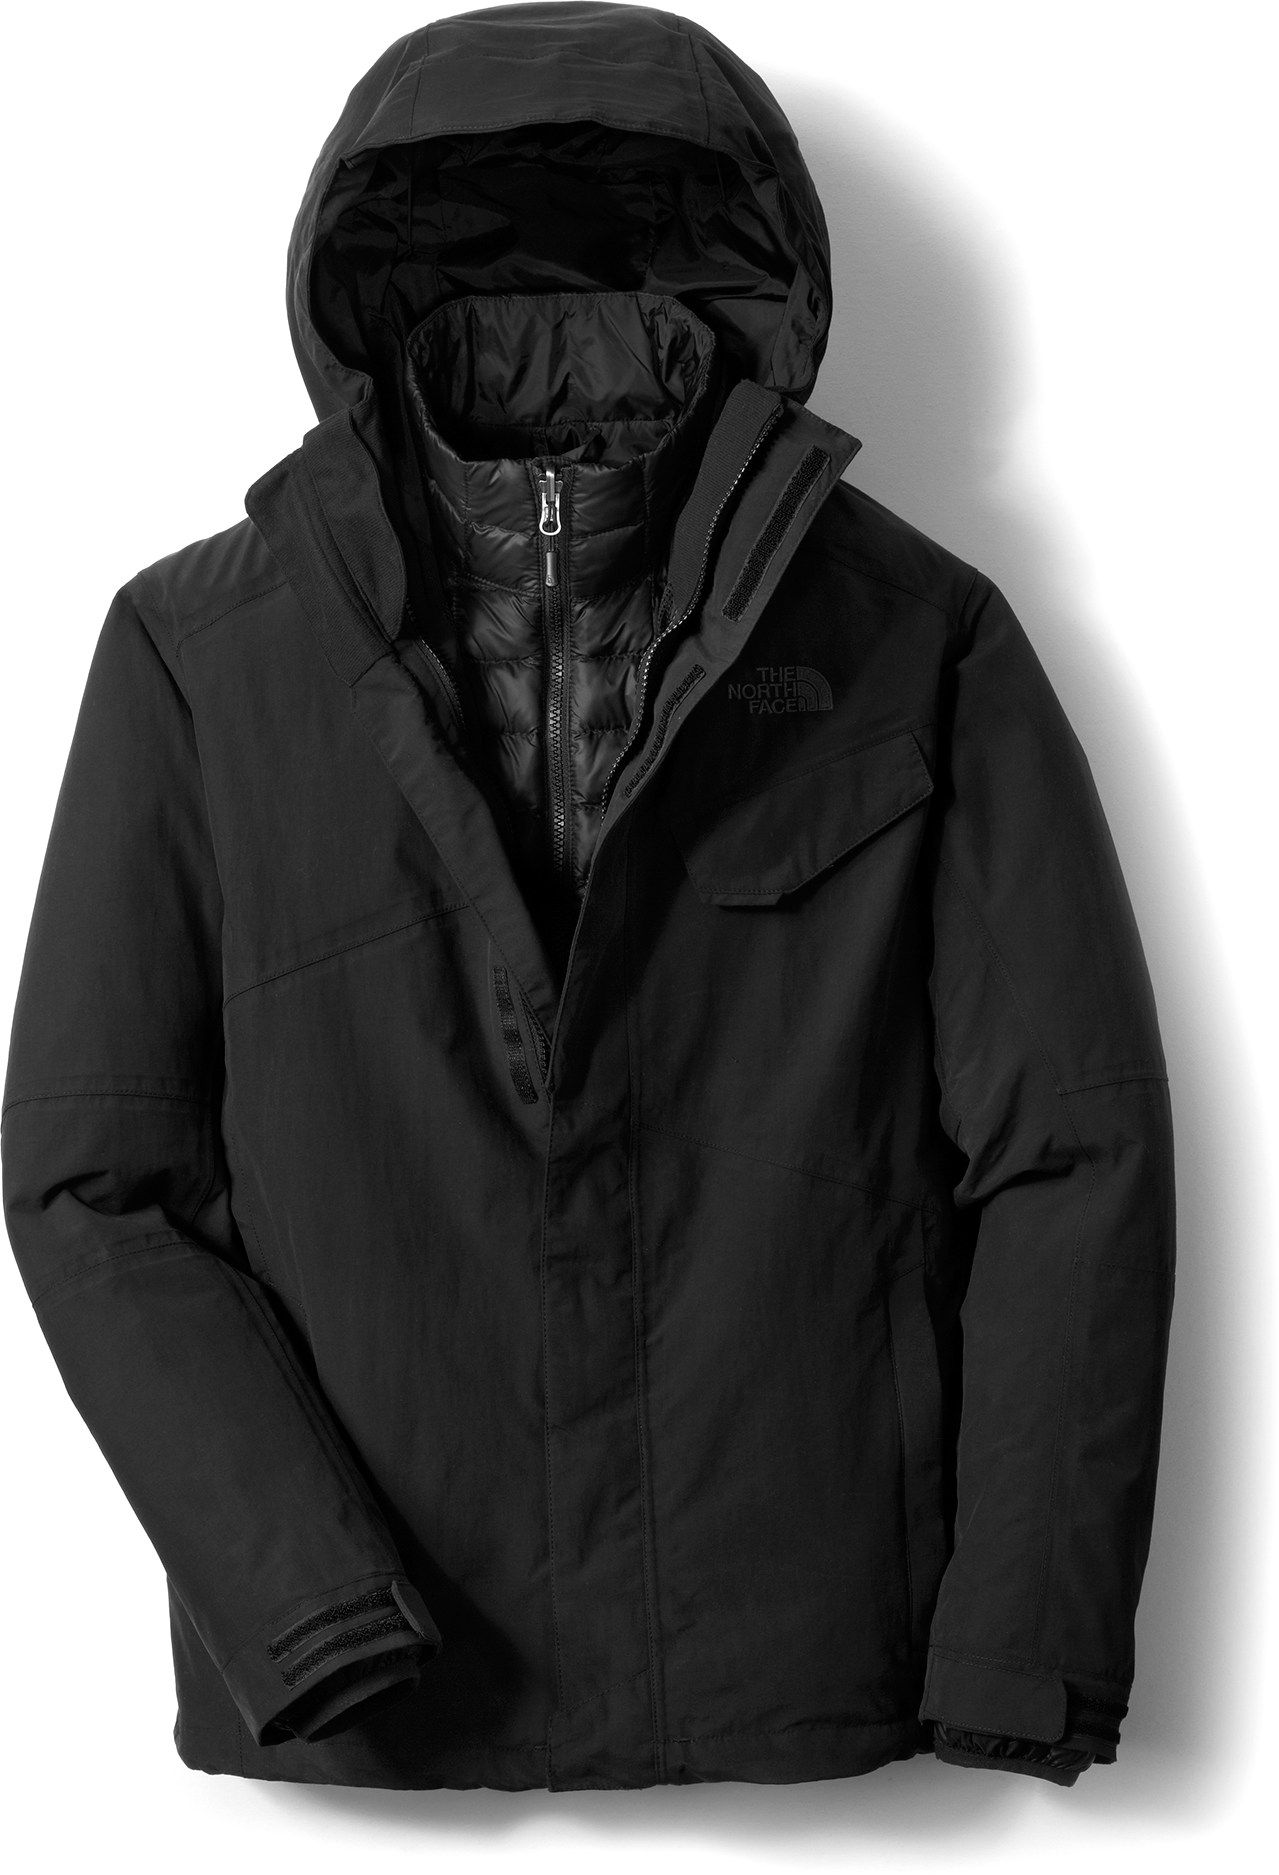 75e51169fde1 The North Face Conway ThermoBall Triclimate 3-in-1 Jacket - Men s ...